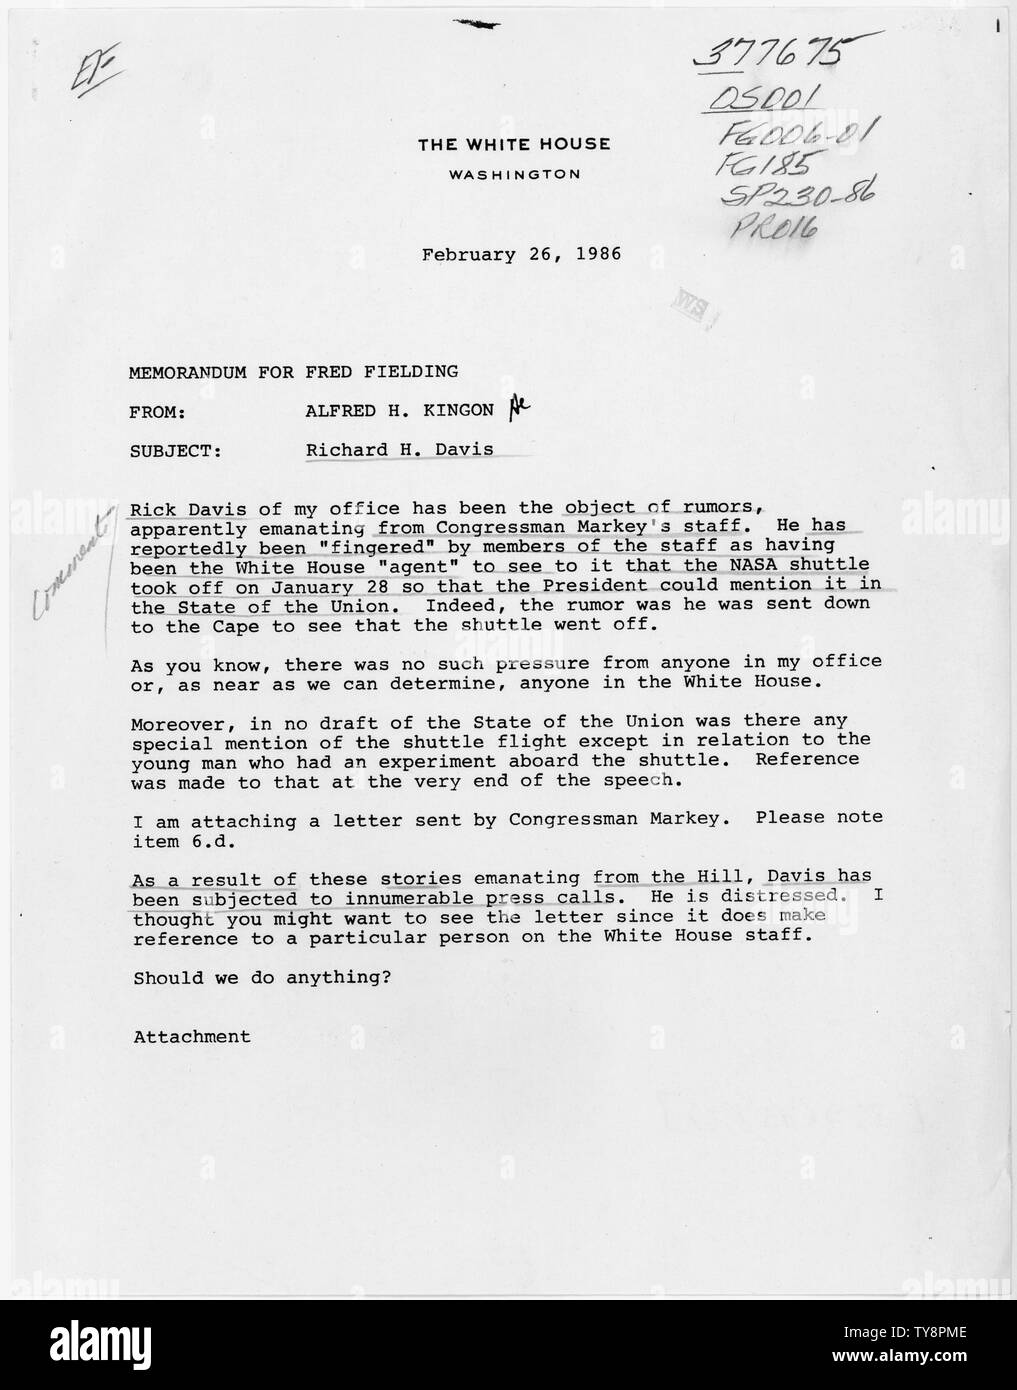 Memo from Alfred H. Kingon to Fred Fielding, re Richard H. Davis; Scope and content:  Memo from the Cabinet Secretary to the White House Counsel, regarding unfounded allegations that a White House staff person had a role in the timing of the space shuttle Challenger launch. Stock Photo